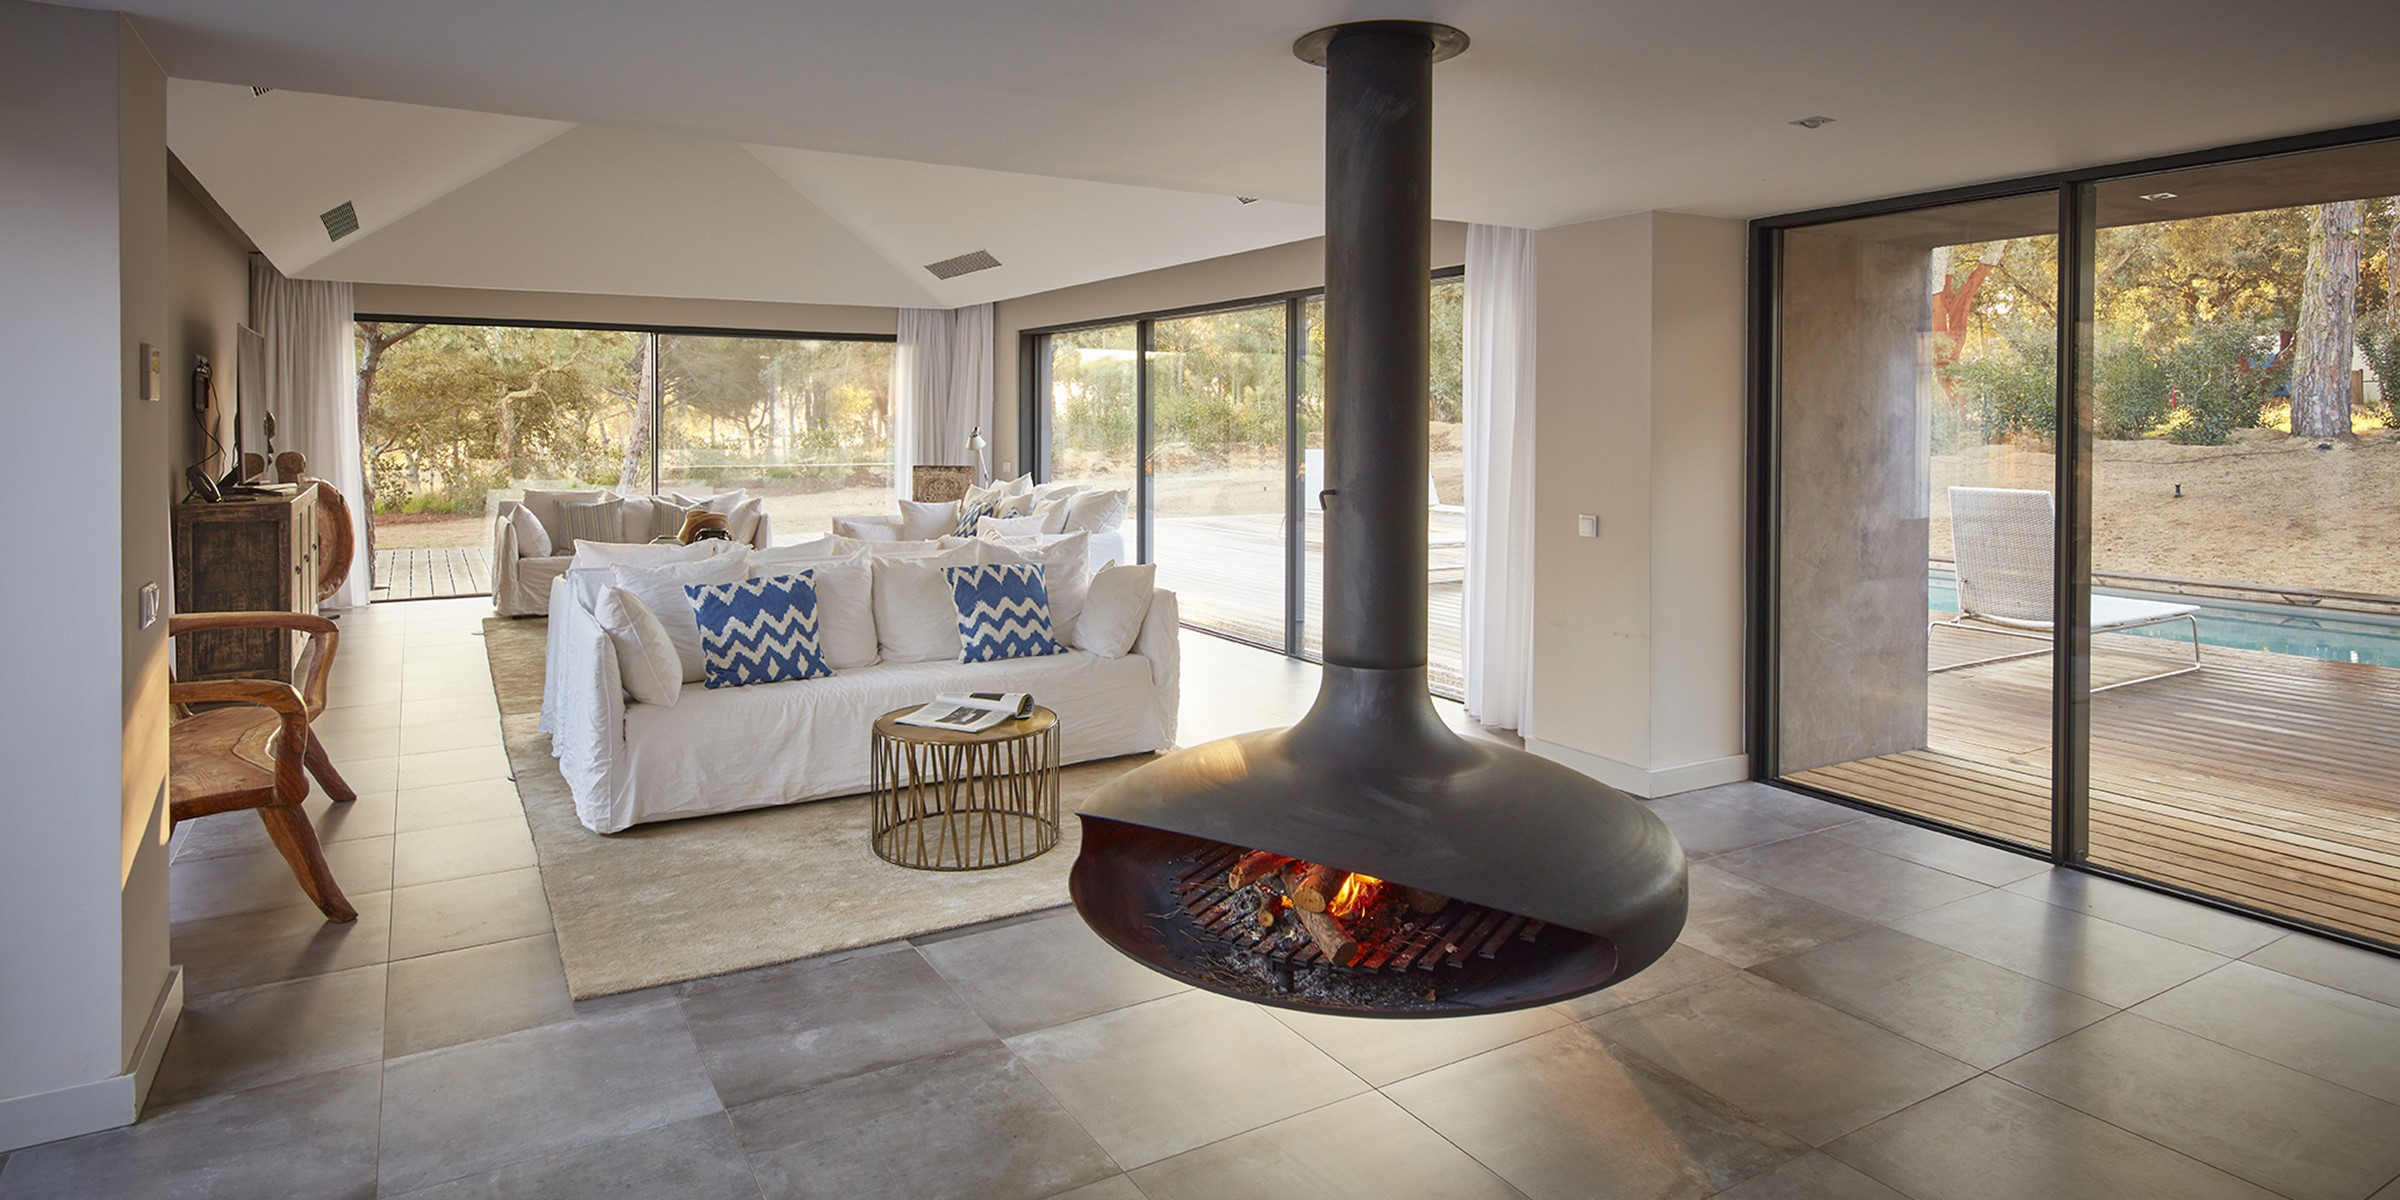 Villa Sublime Comporta Living Room With Fire 0202 LR